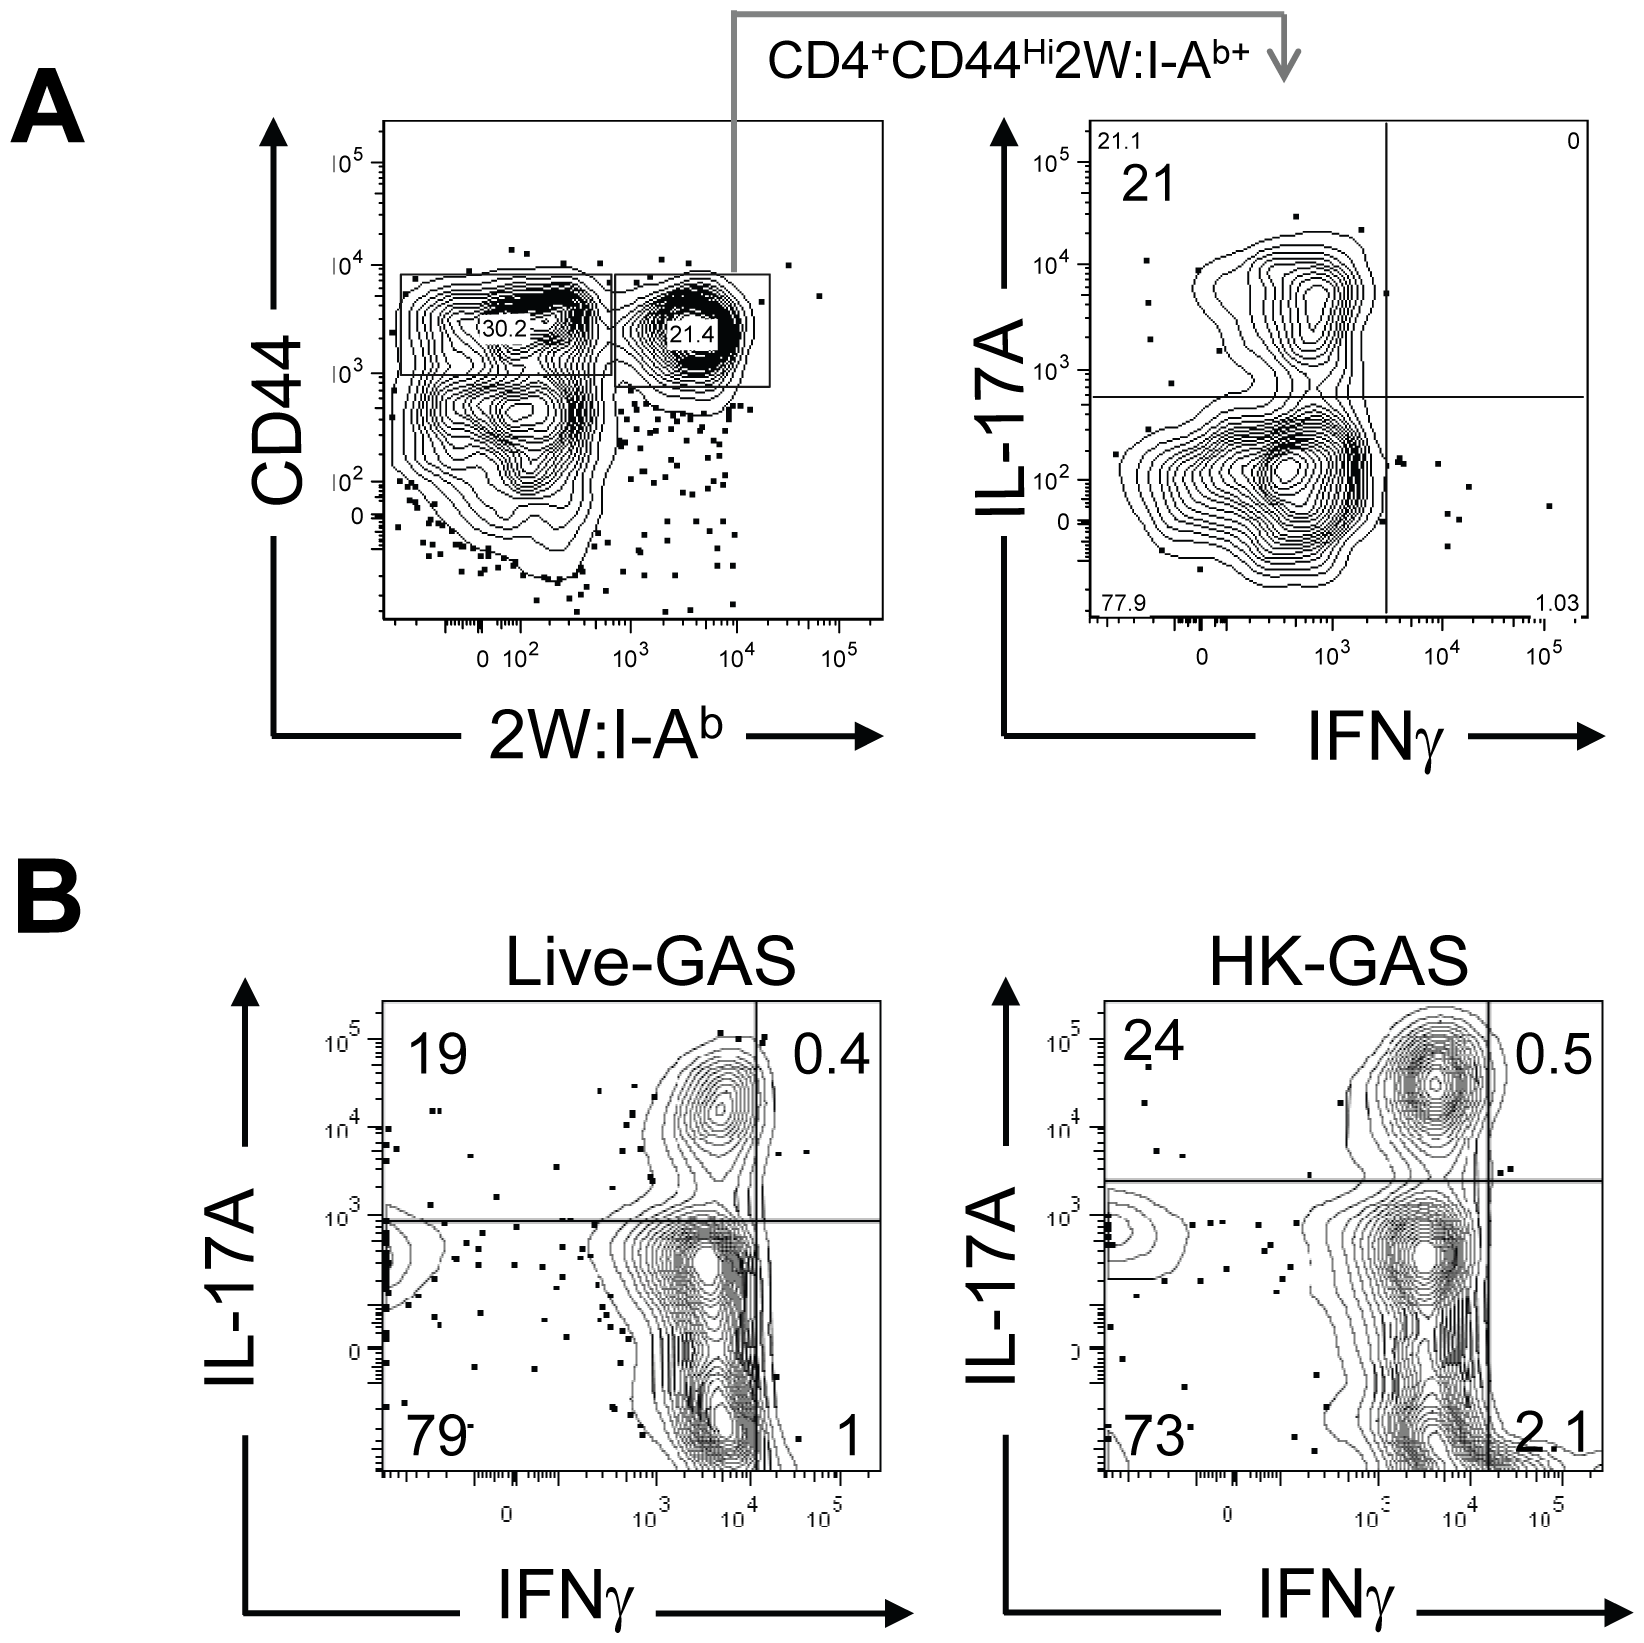 Primary intranasal GAS infection induces a Th17 response.